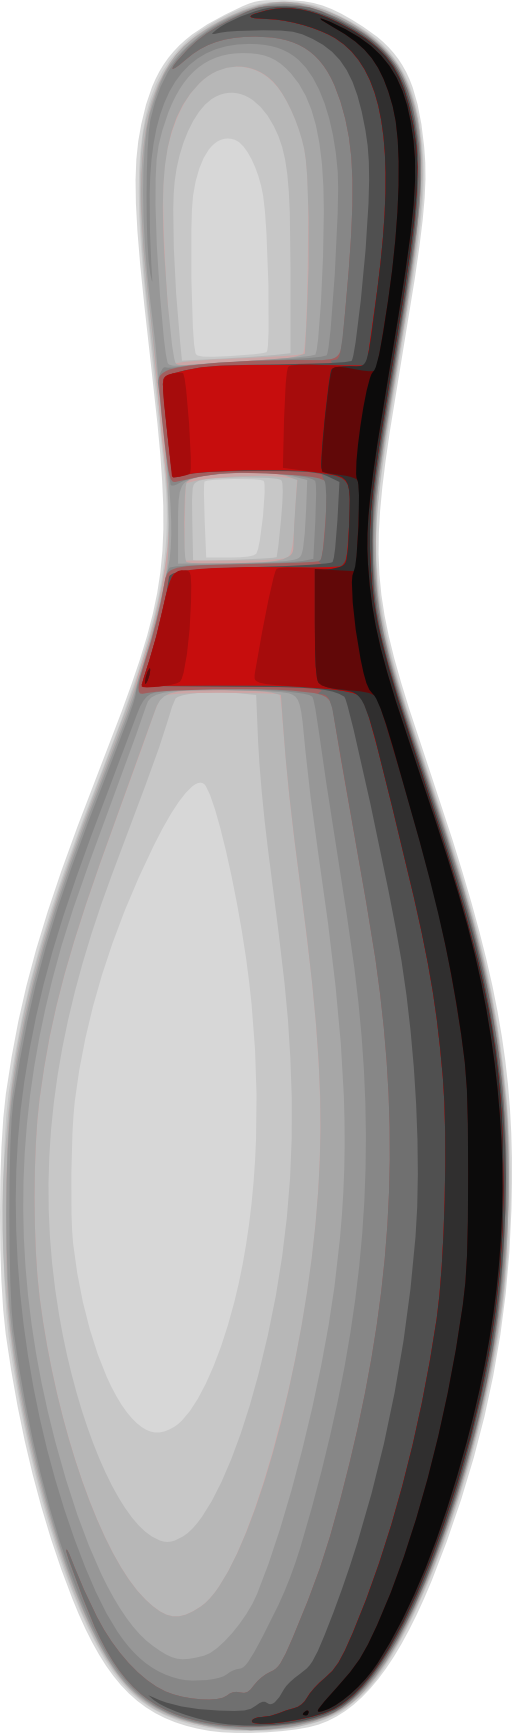 Bowling Pin Clipart I2clipart Royalty Fr-Bowling Pin Clipart I2clipart Royalty Free Public Domain Clipart-11